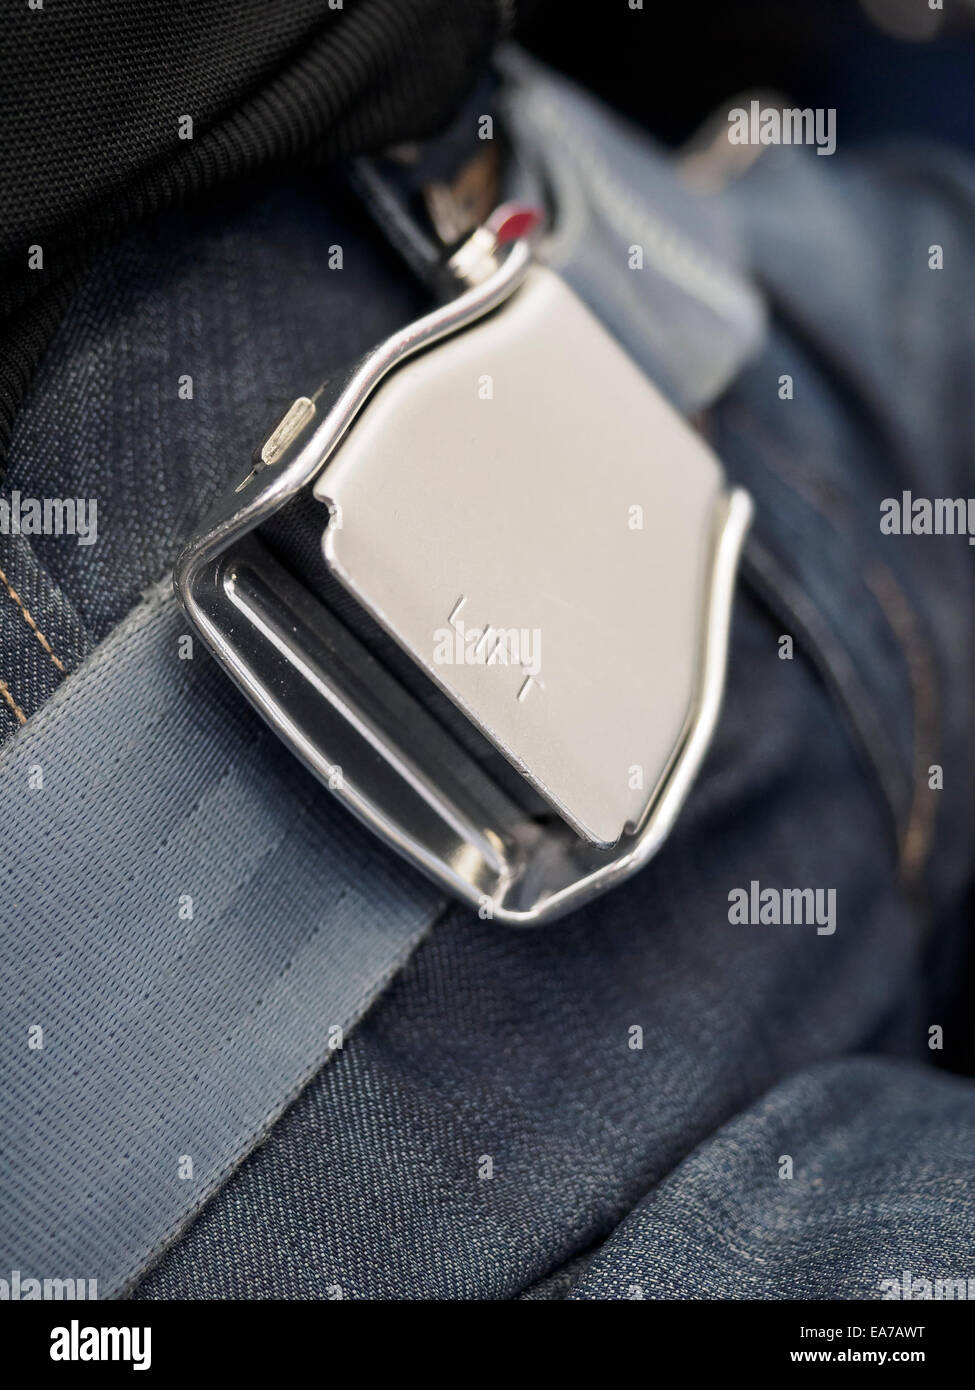 44df38a17630 Fastening Seatbelt Photos   Fastening Seatbelt Images - Alamy